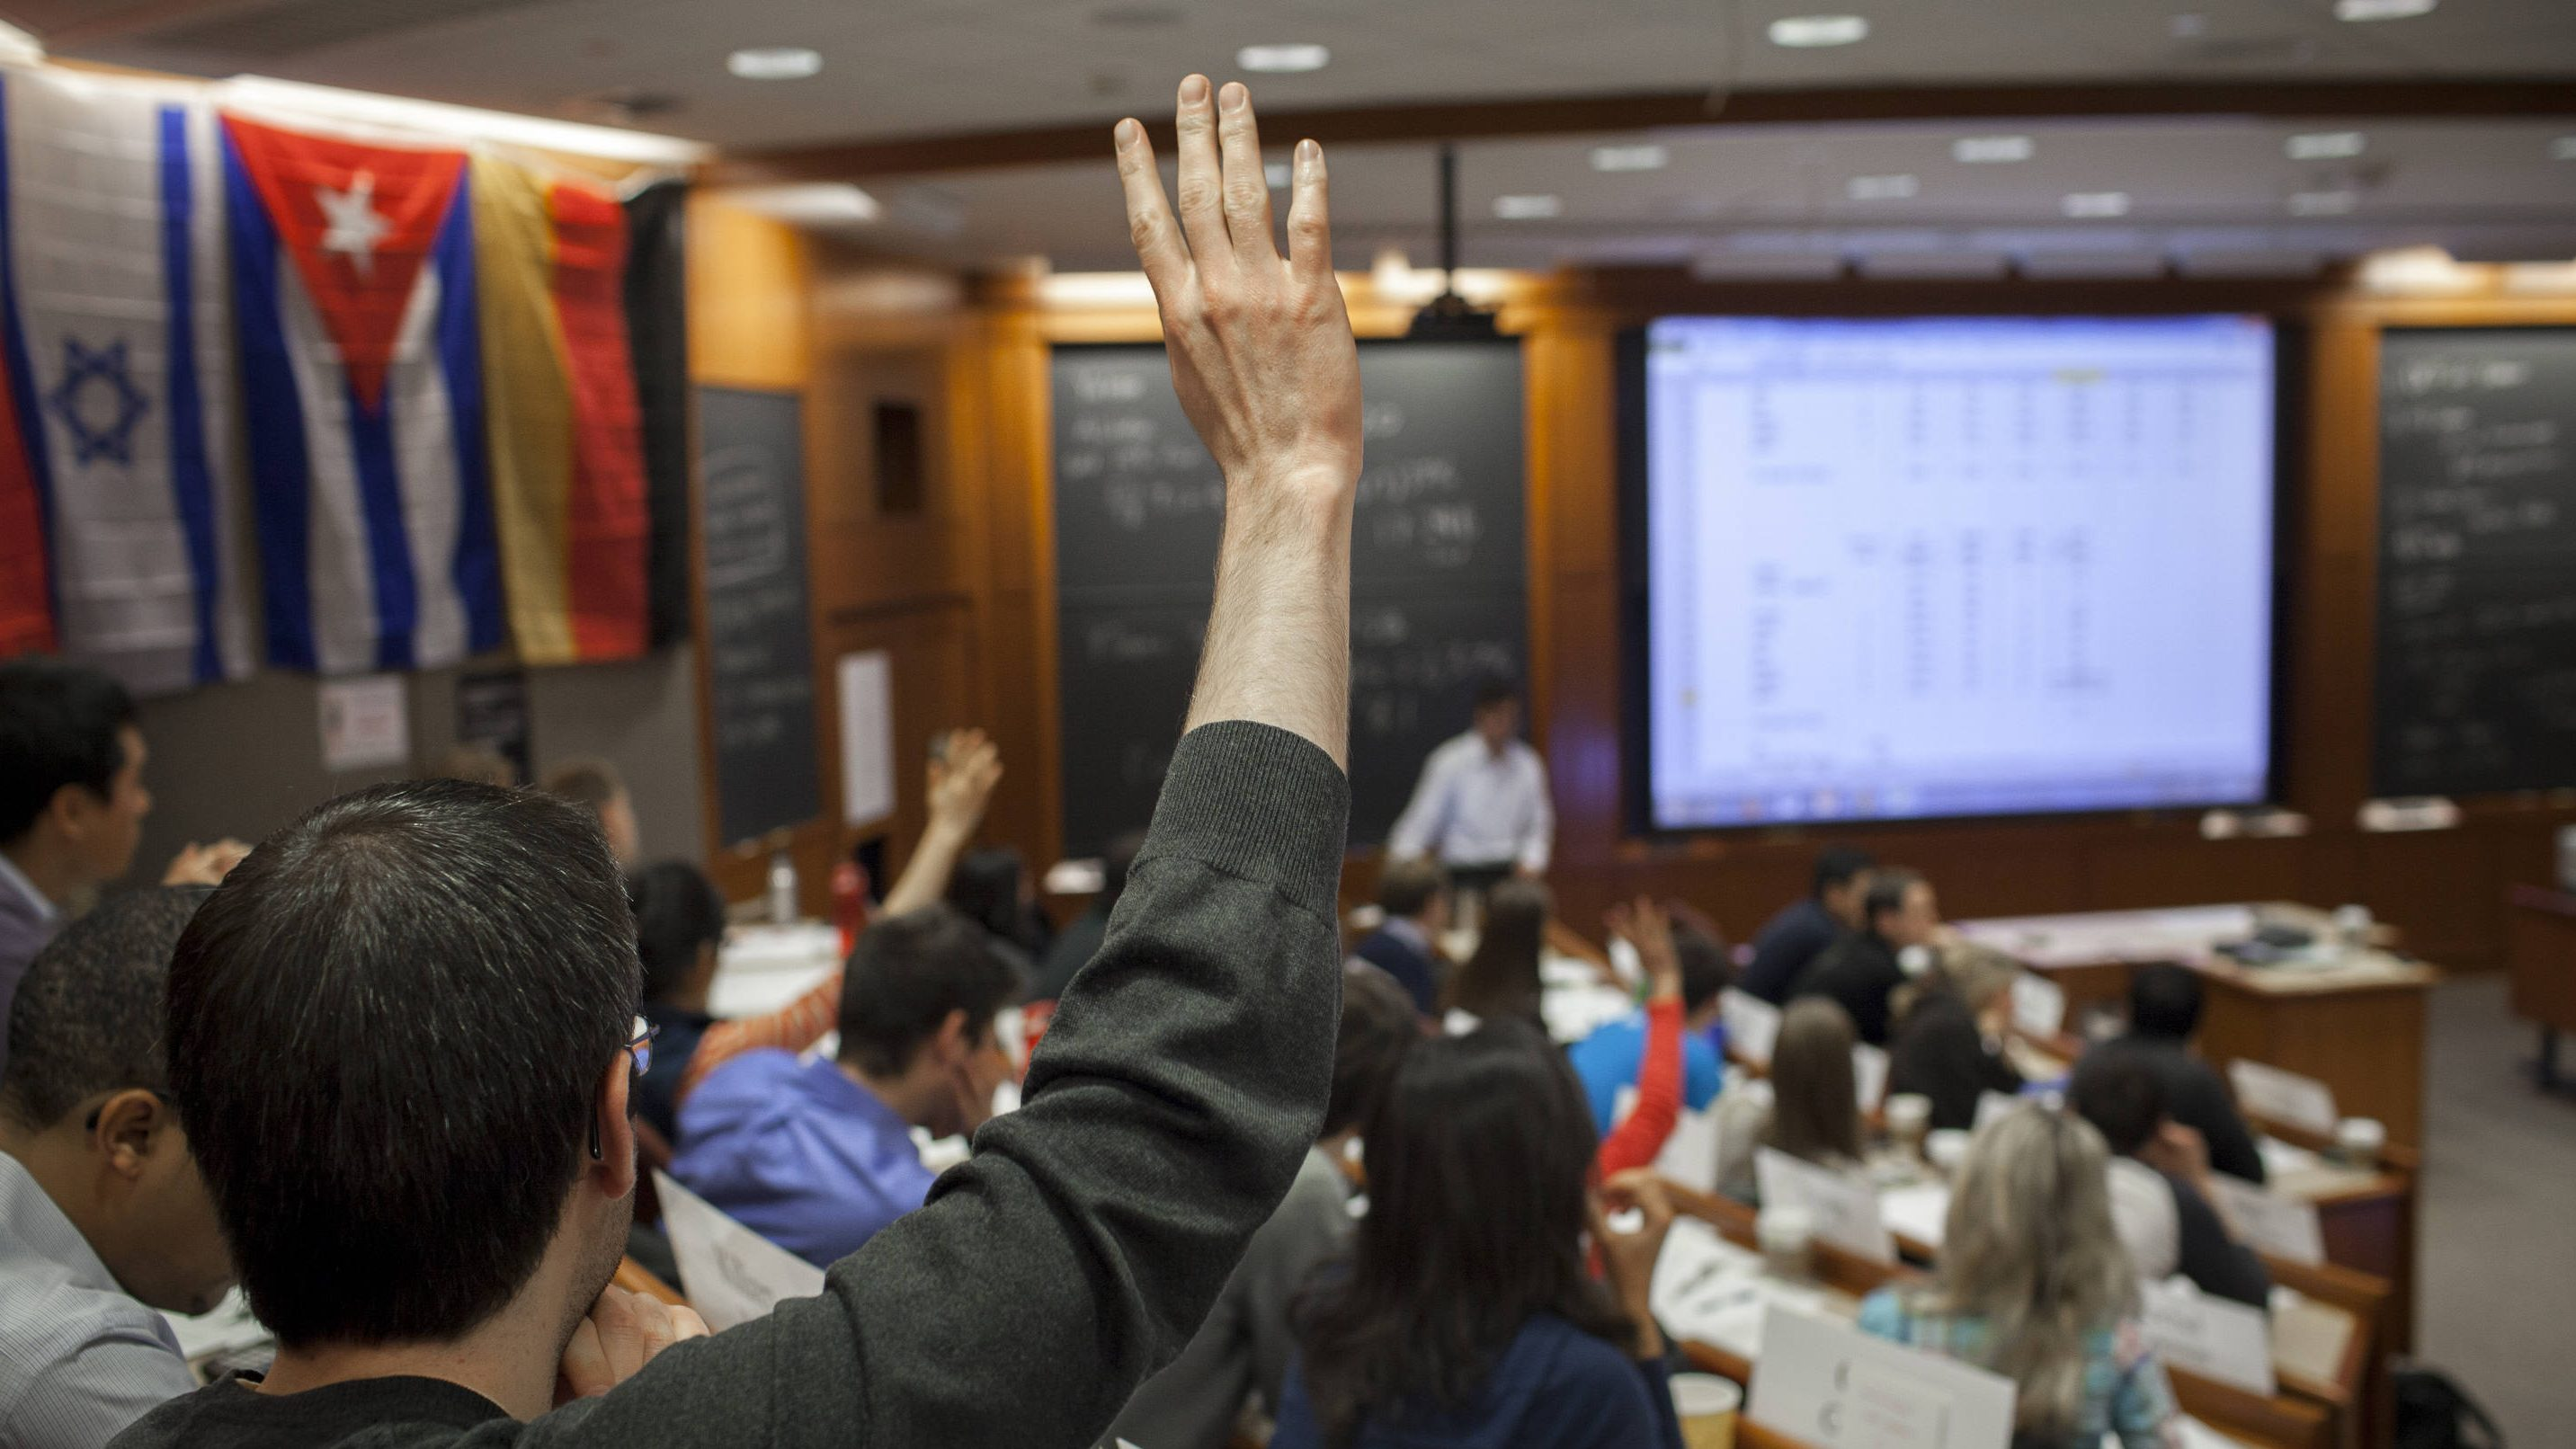 The problem with the Harvard Business School case study method